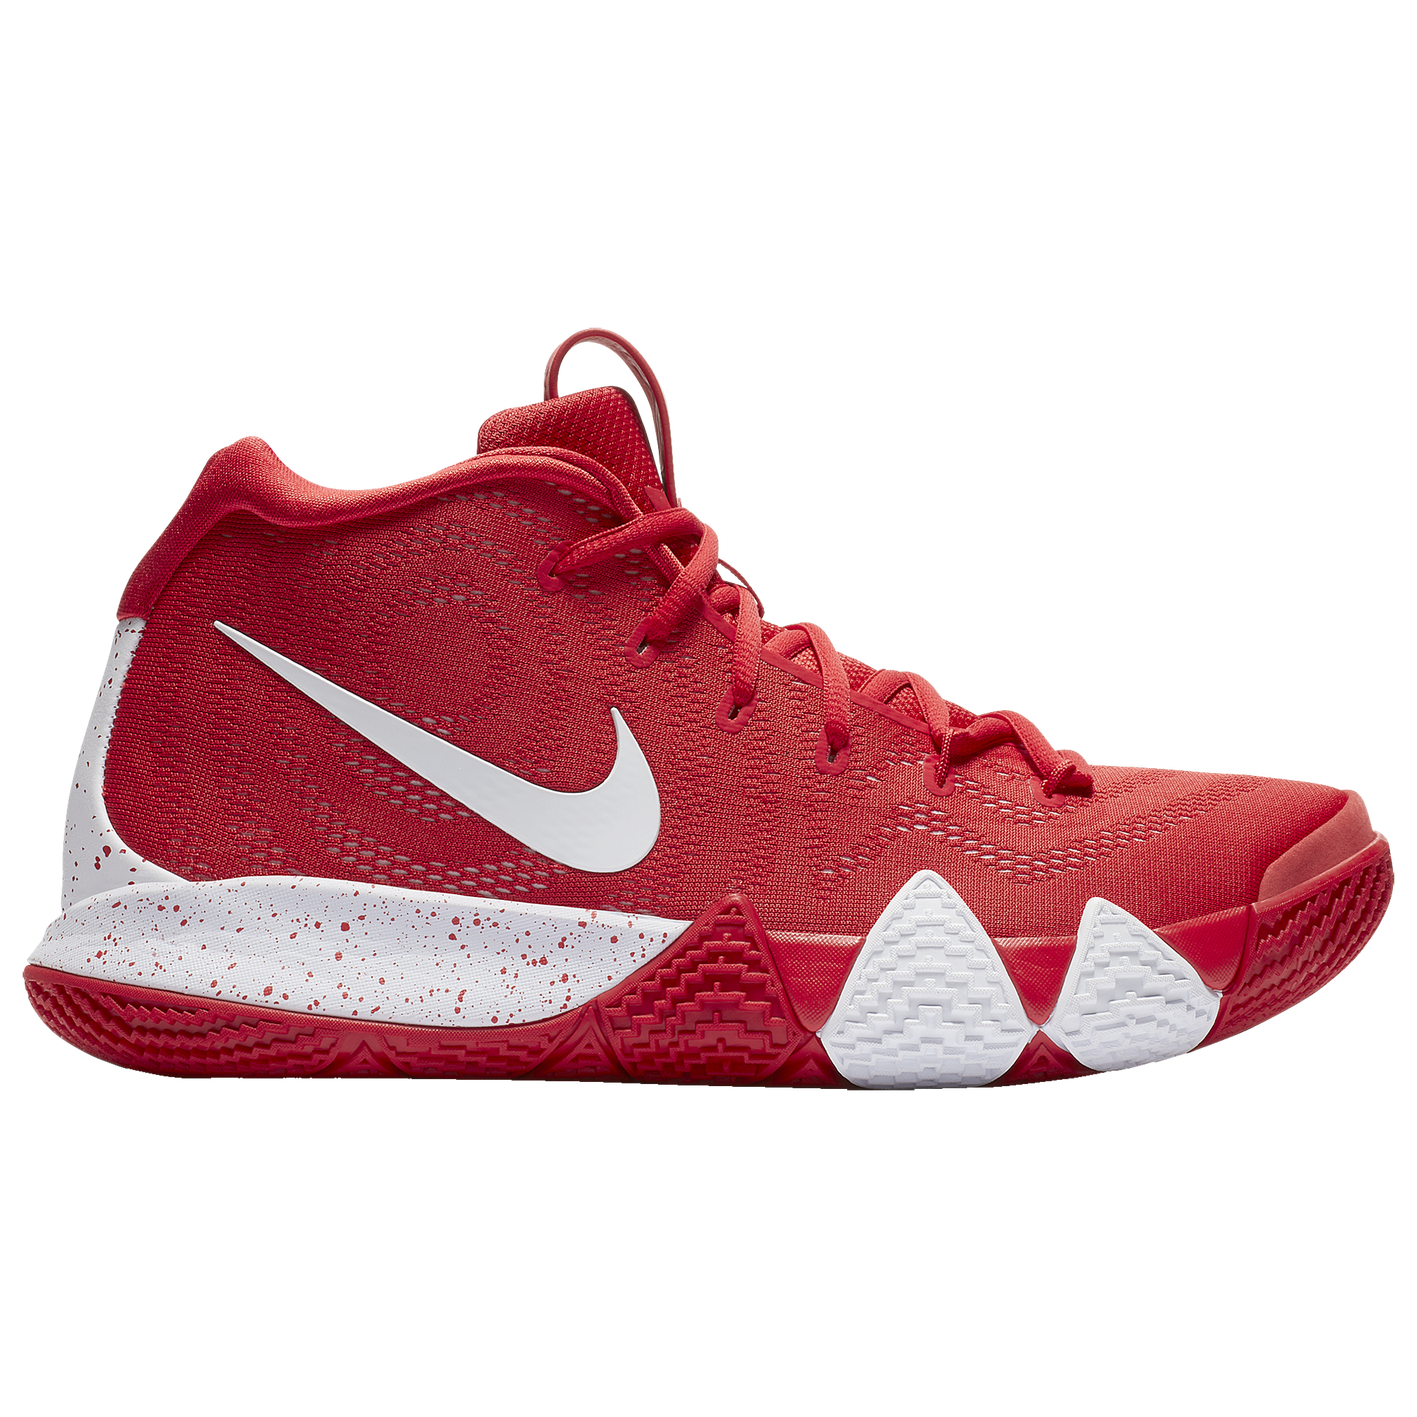 30bdd554407a Nike Kyrie 4 - Men s - Basketball - Shoes - Irving